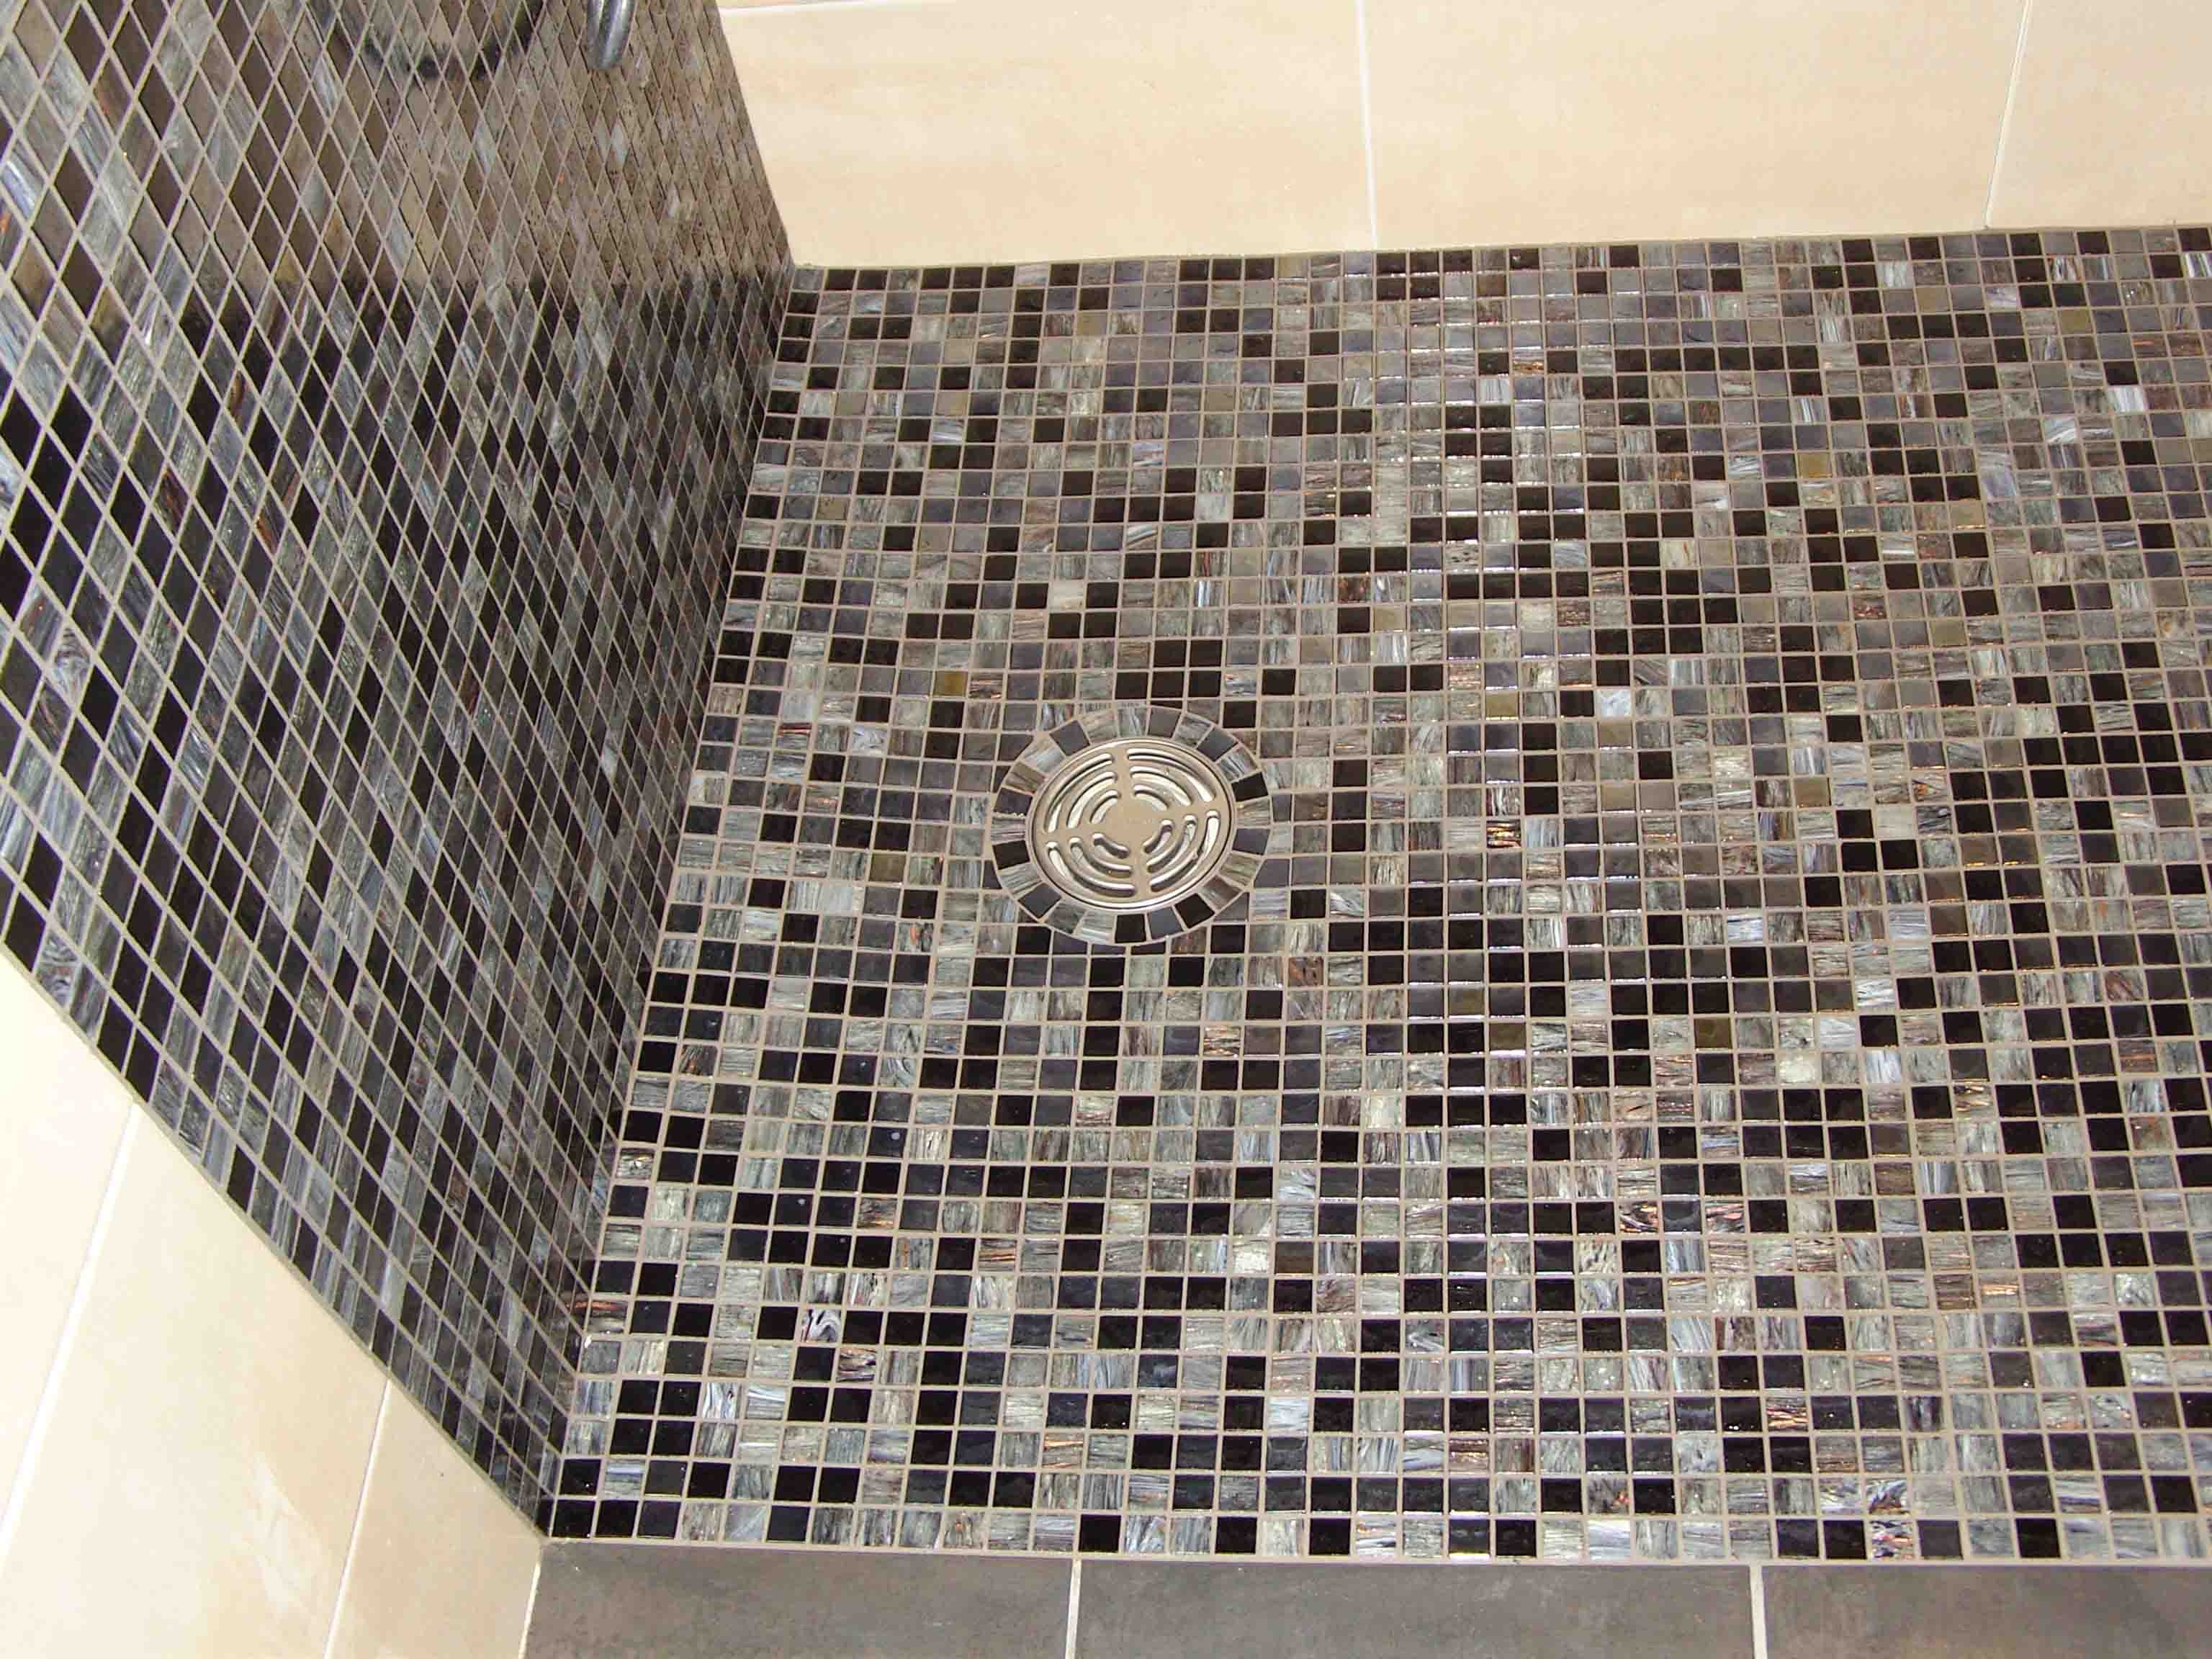 Carrelage sol douche mosaique carrelage id es de for Mosaique carrelage